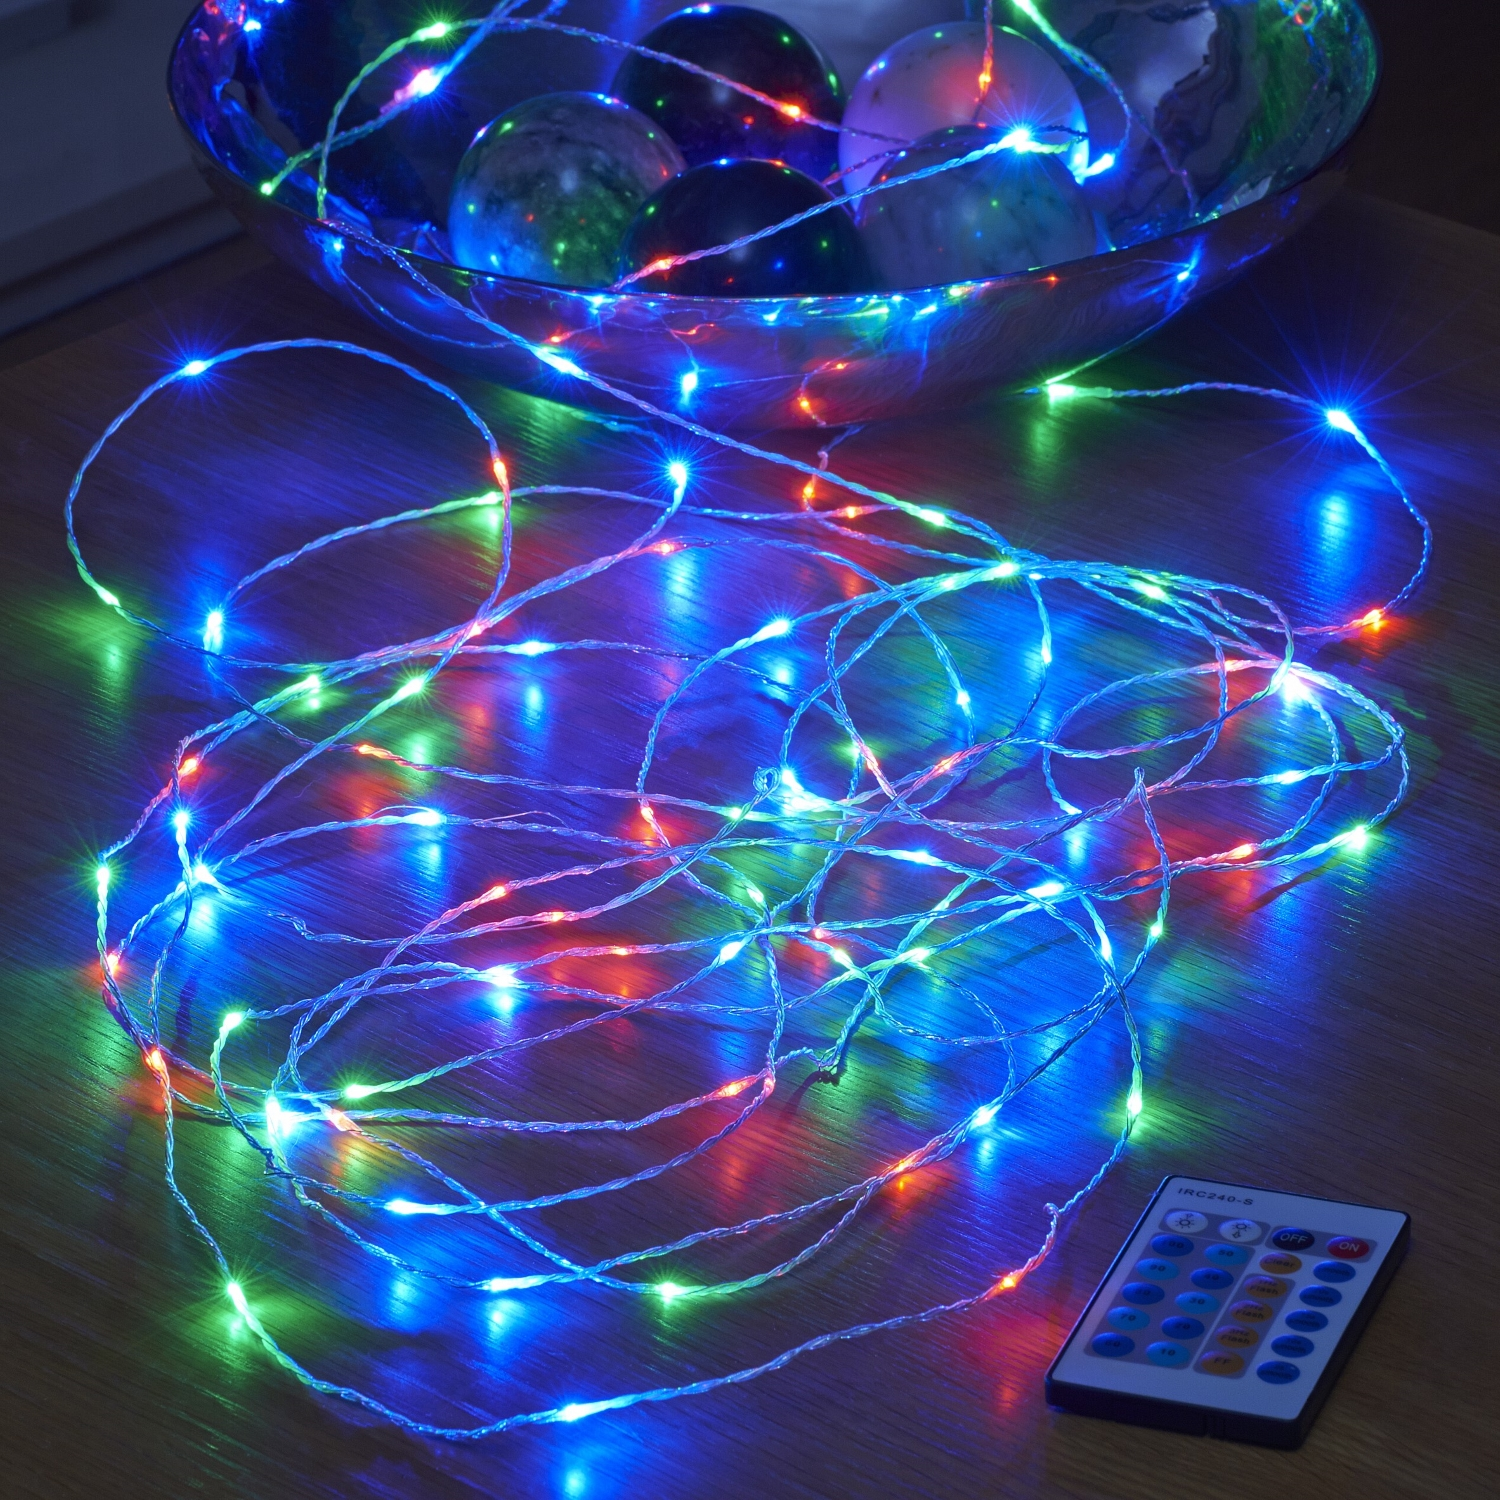 Auraglow 10m Remote Control Plug In 100 Micro LED String Lights eBay